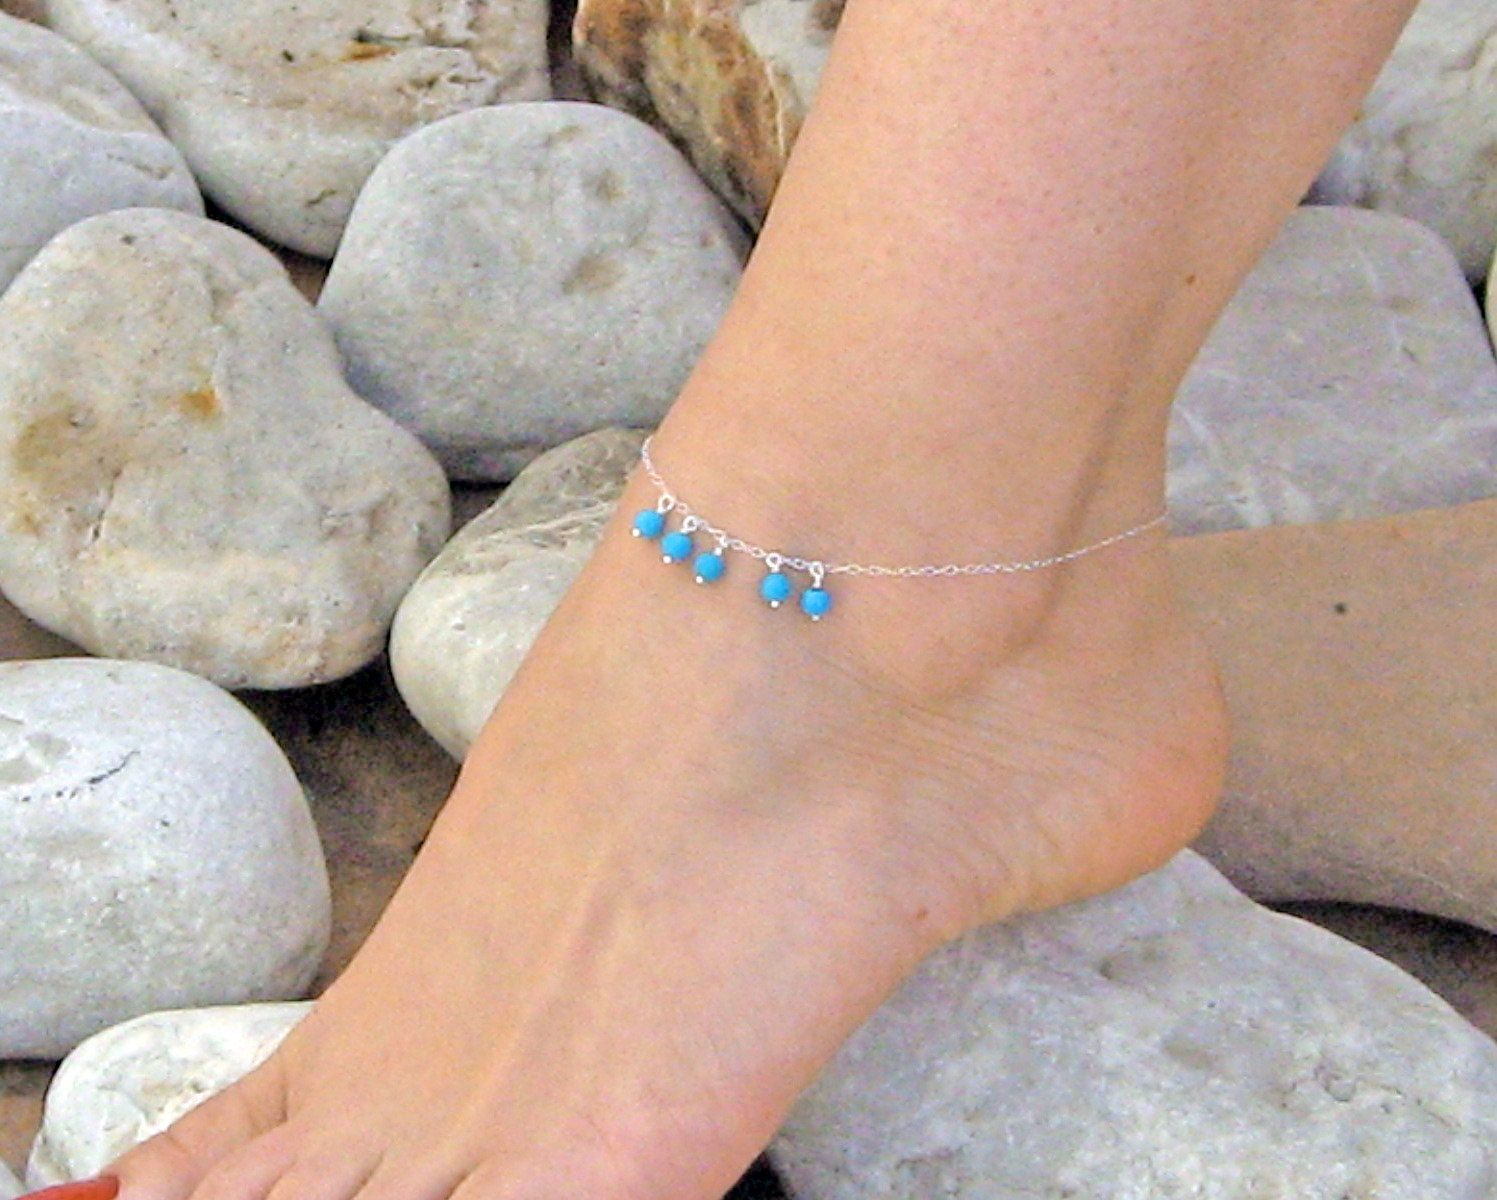 from chain rope ankle beach turtle foot summer anklet dhgate com pc myjewelry product turquoise accessory bracelets jewelry for beads black anklets women